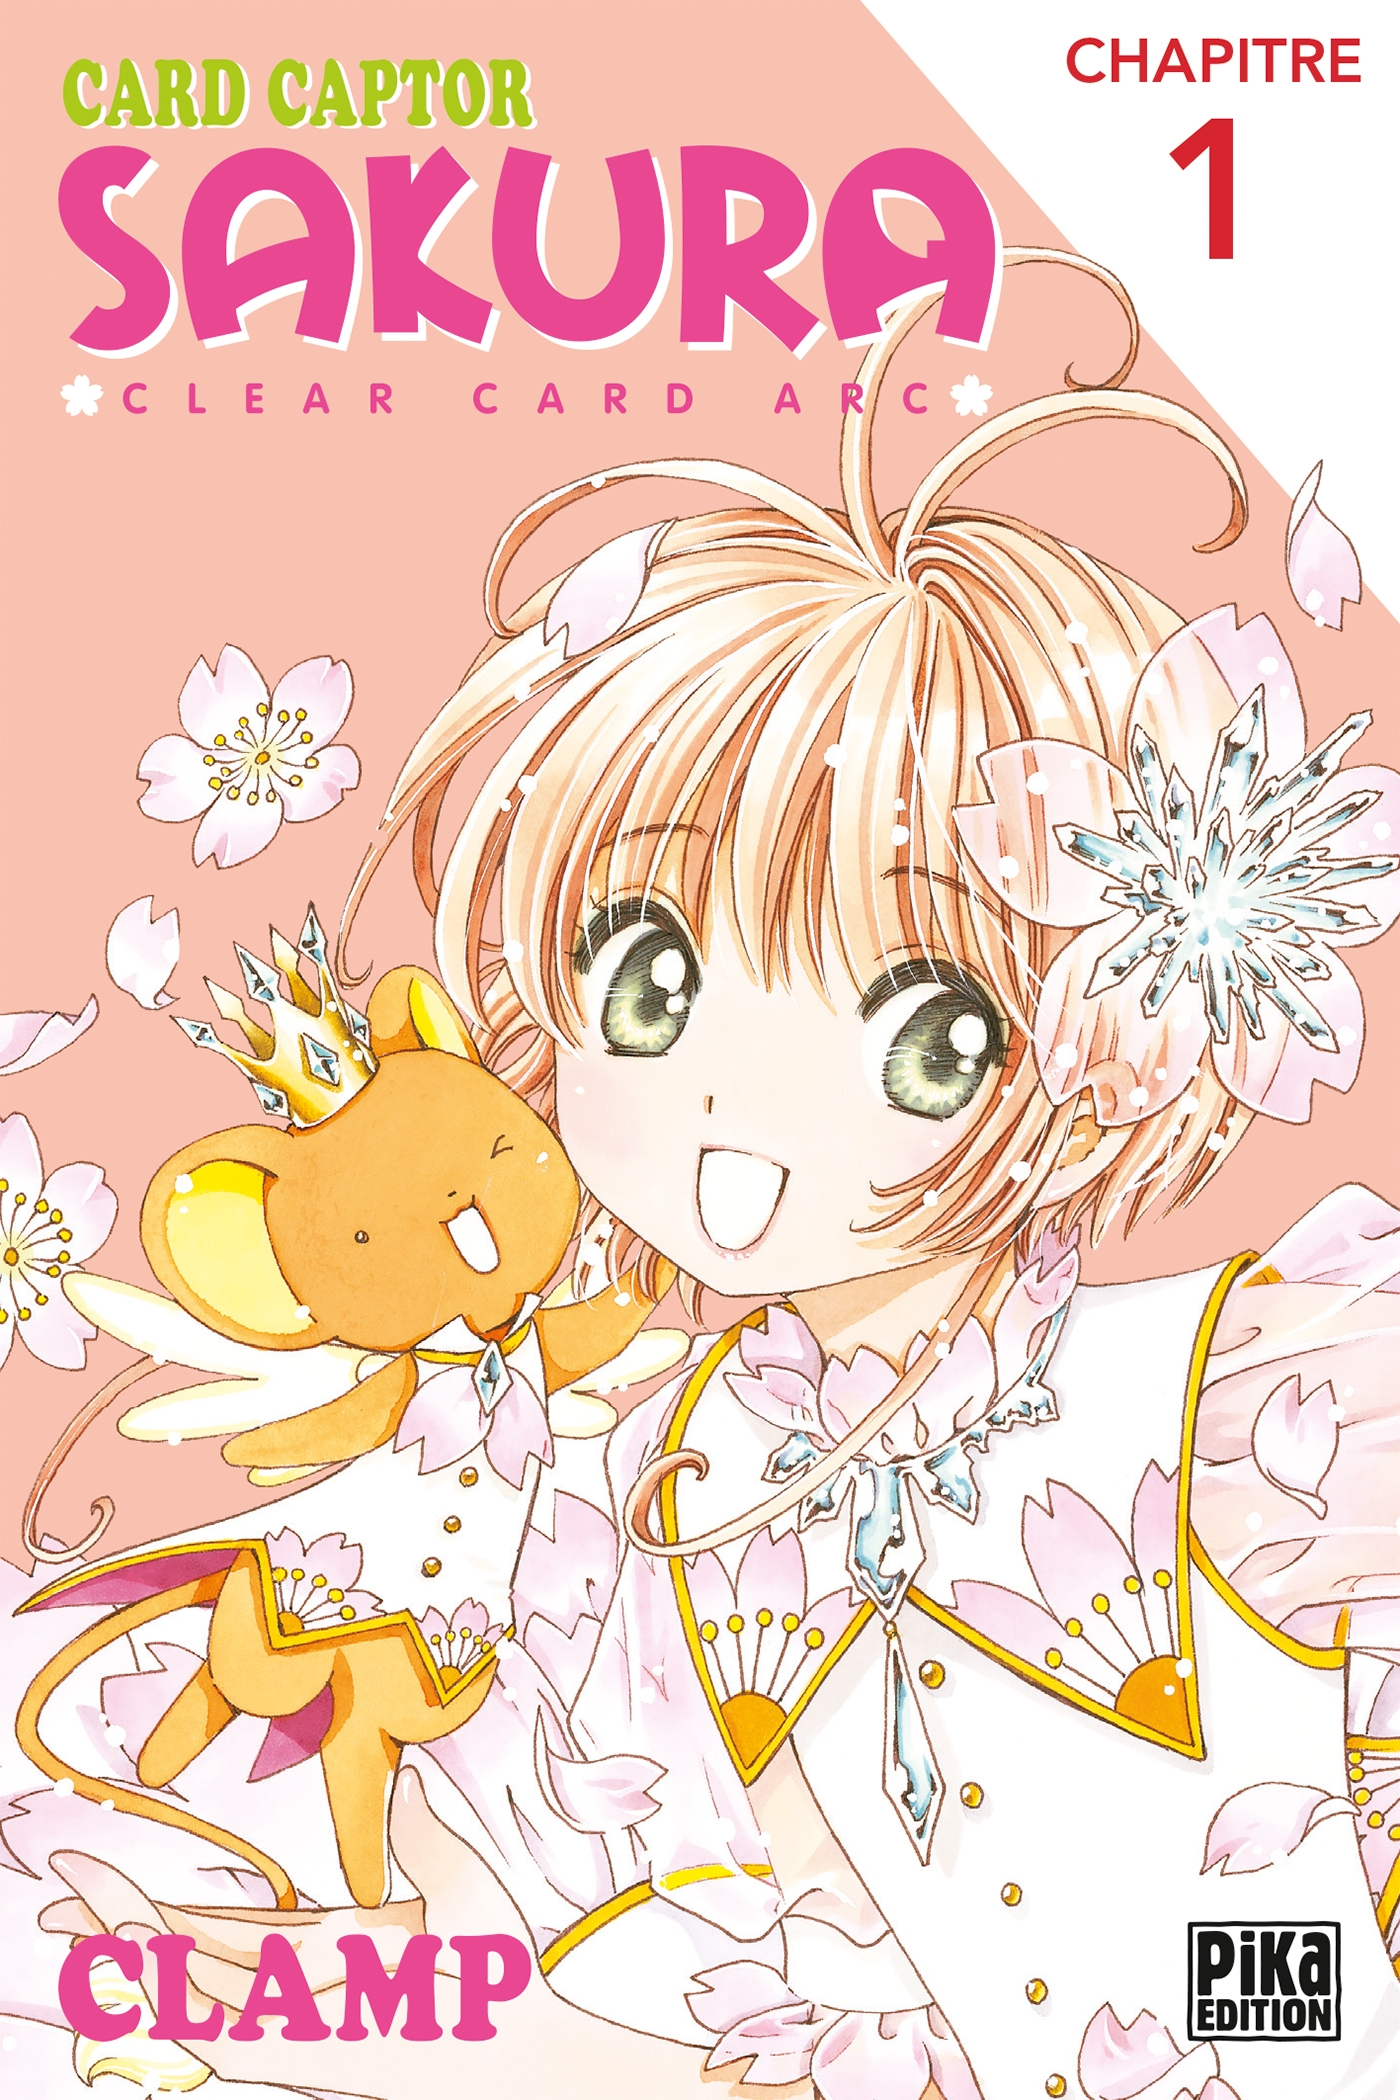 Card Captor Sakura - Clear Card Arc Chapitre 1